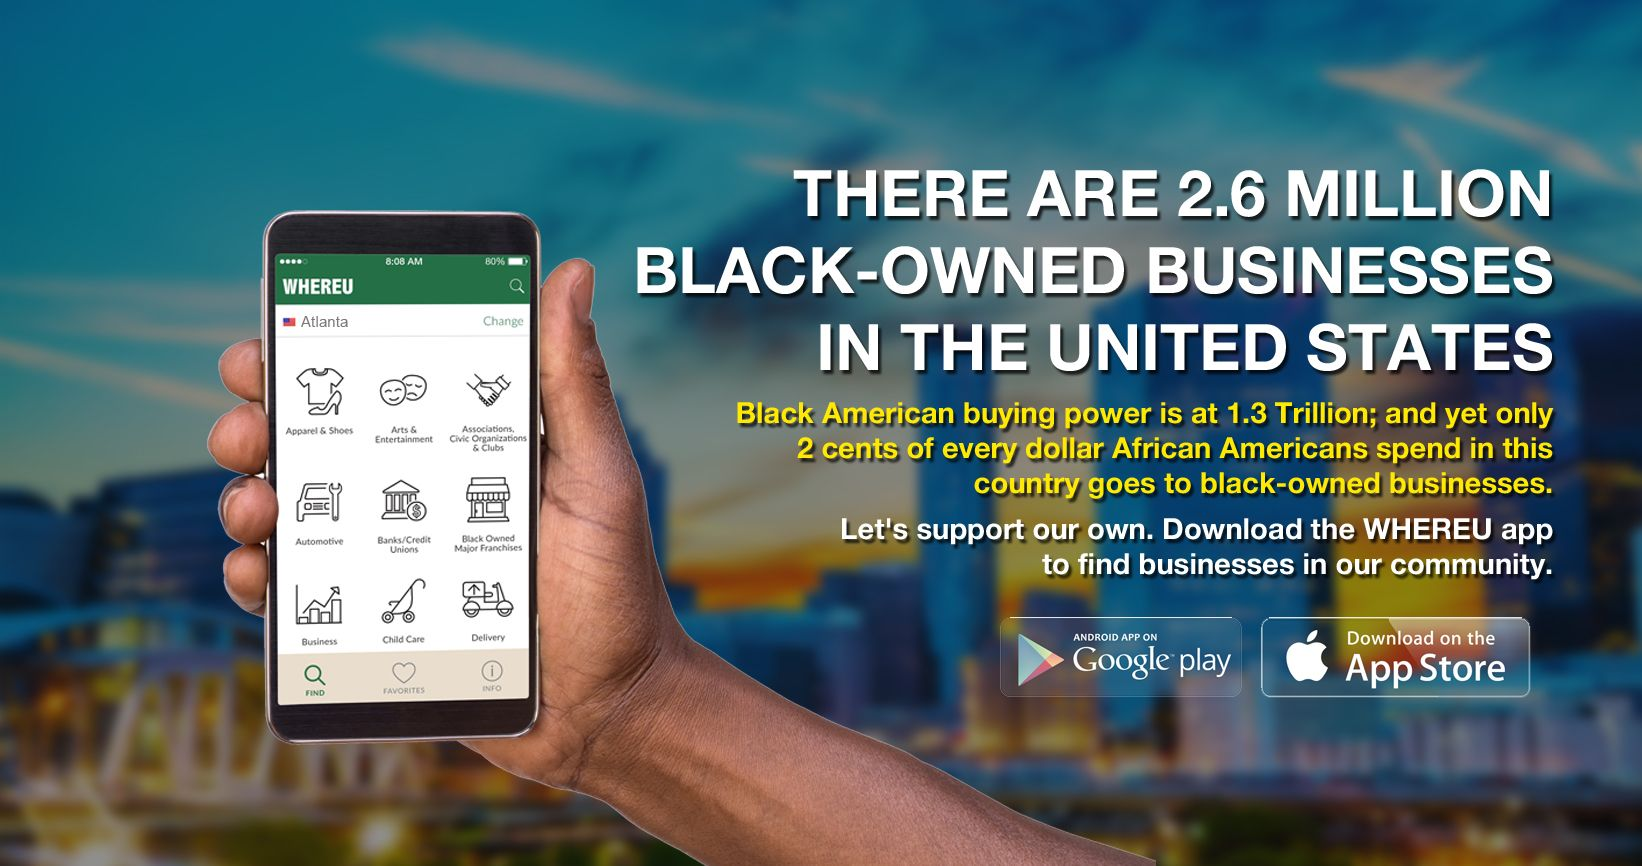 There are 2.6 Million Black Owned Businesses in the United States